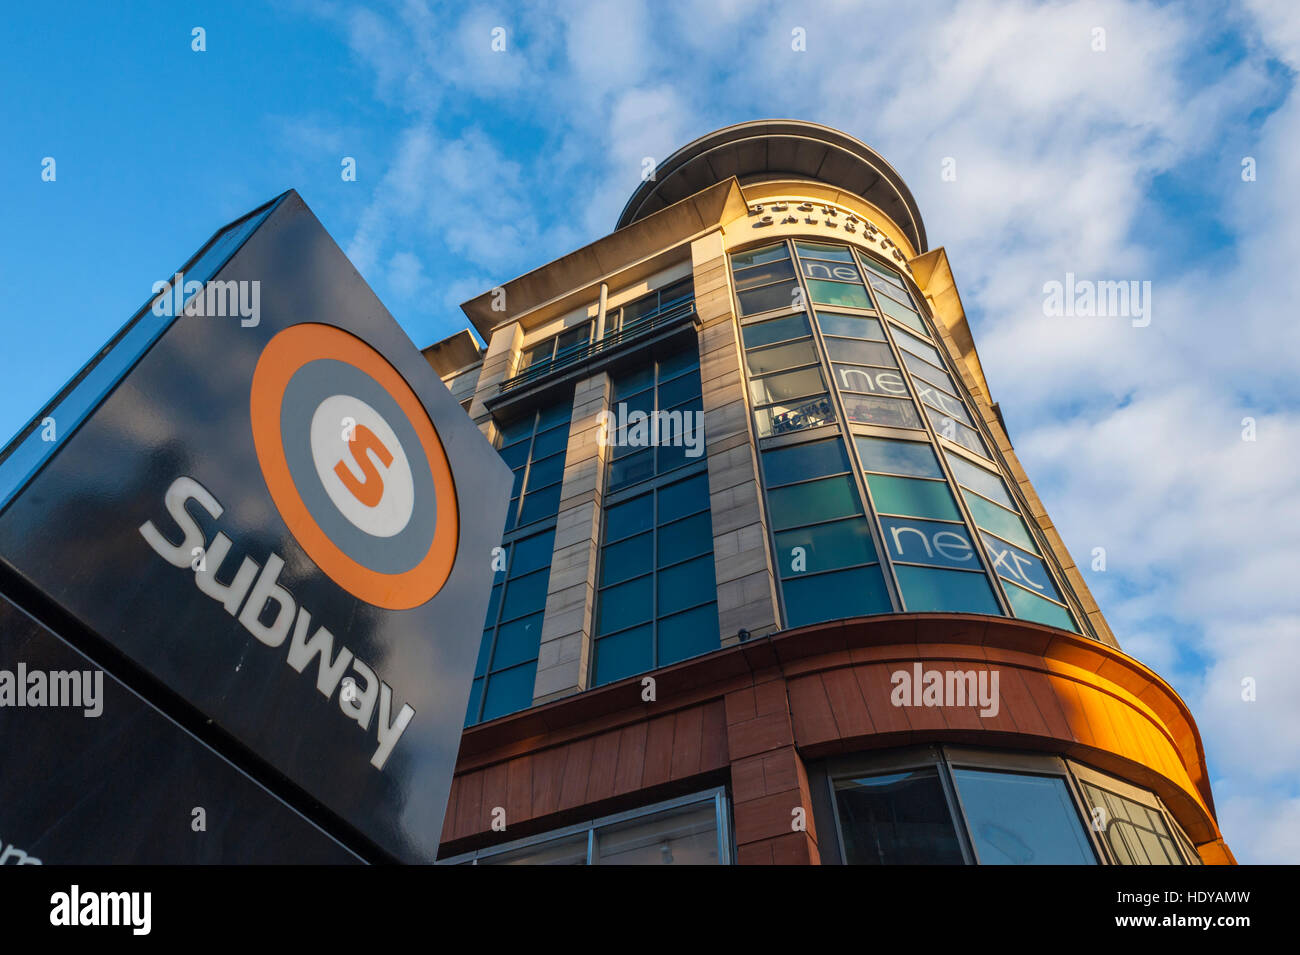 Looking up at the Buchanan galleries from the entrace to Glasgow subway in Buchanan st. - Stock Image